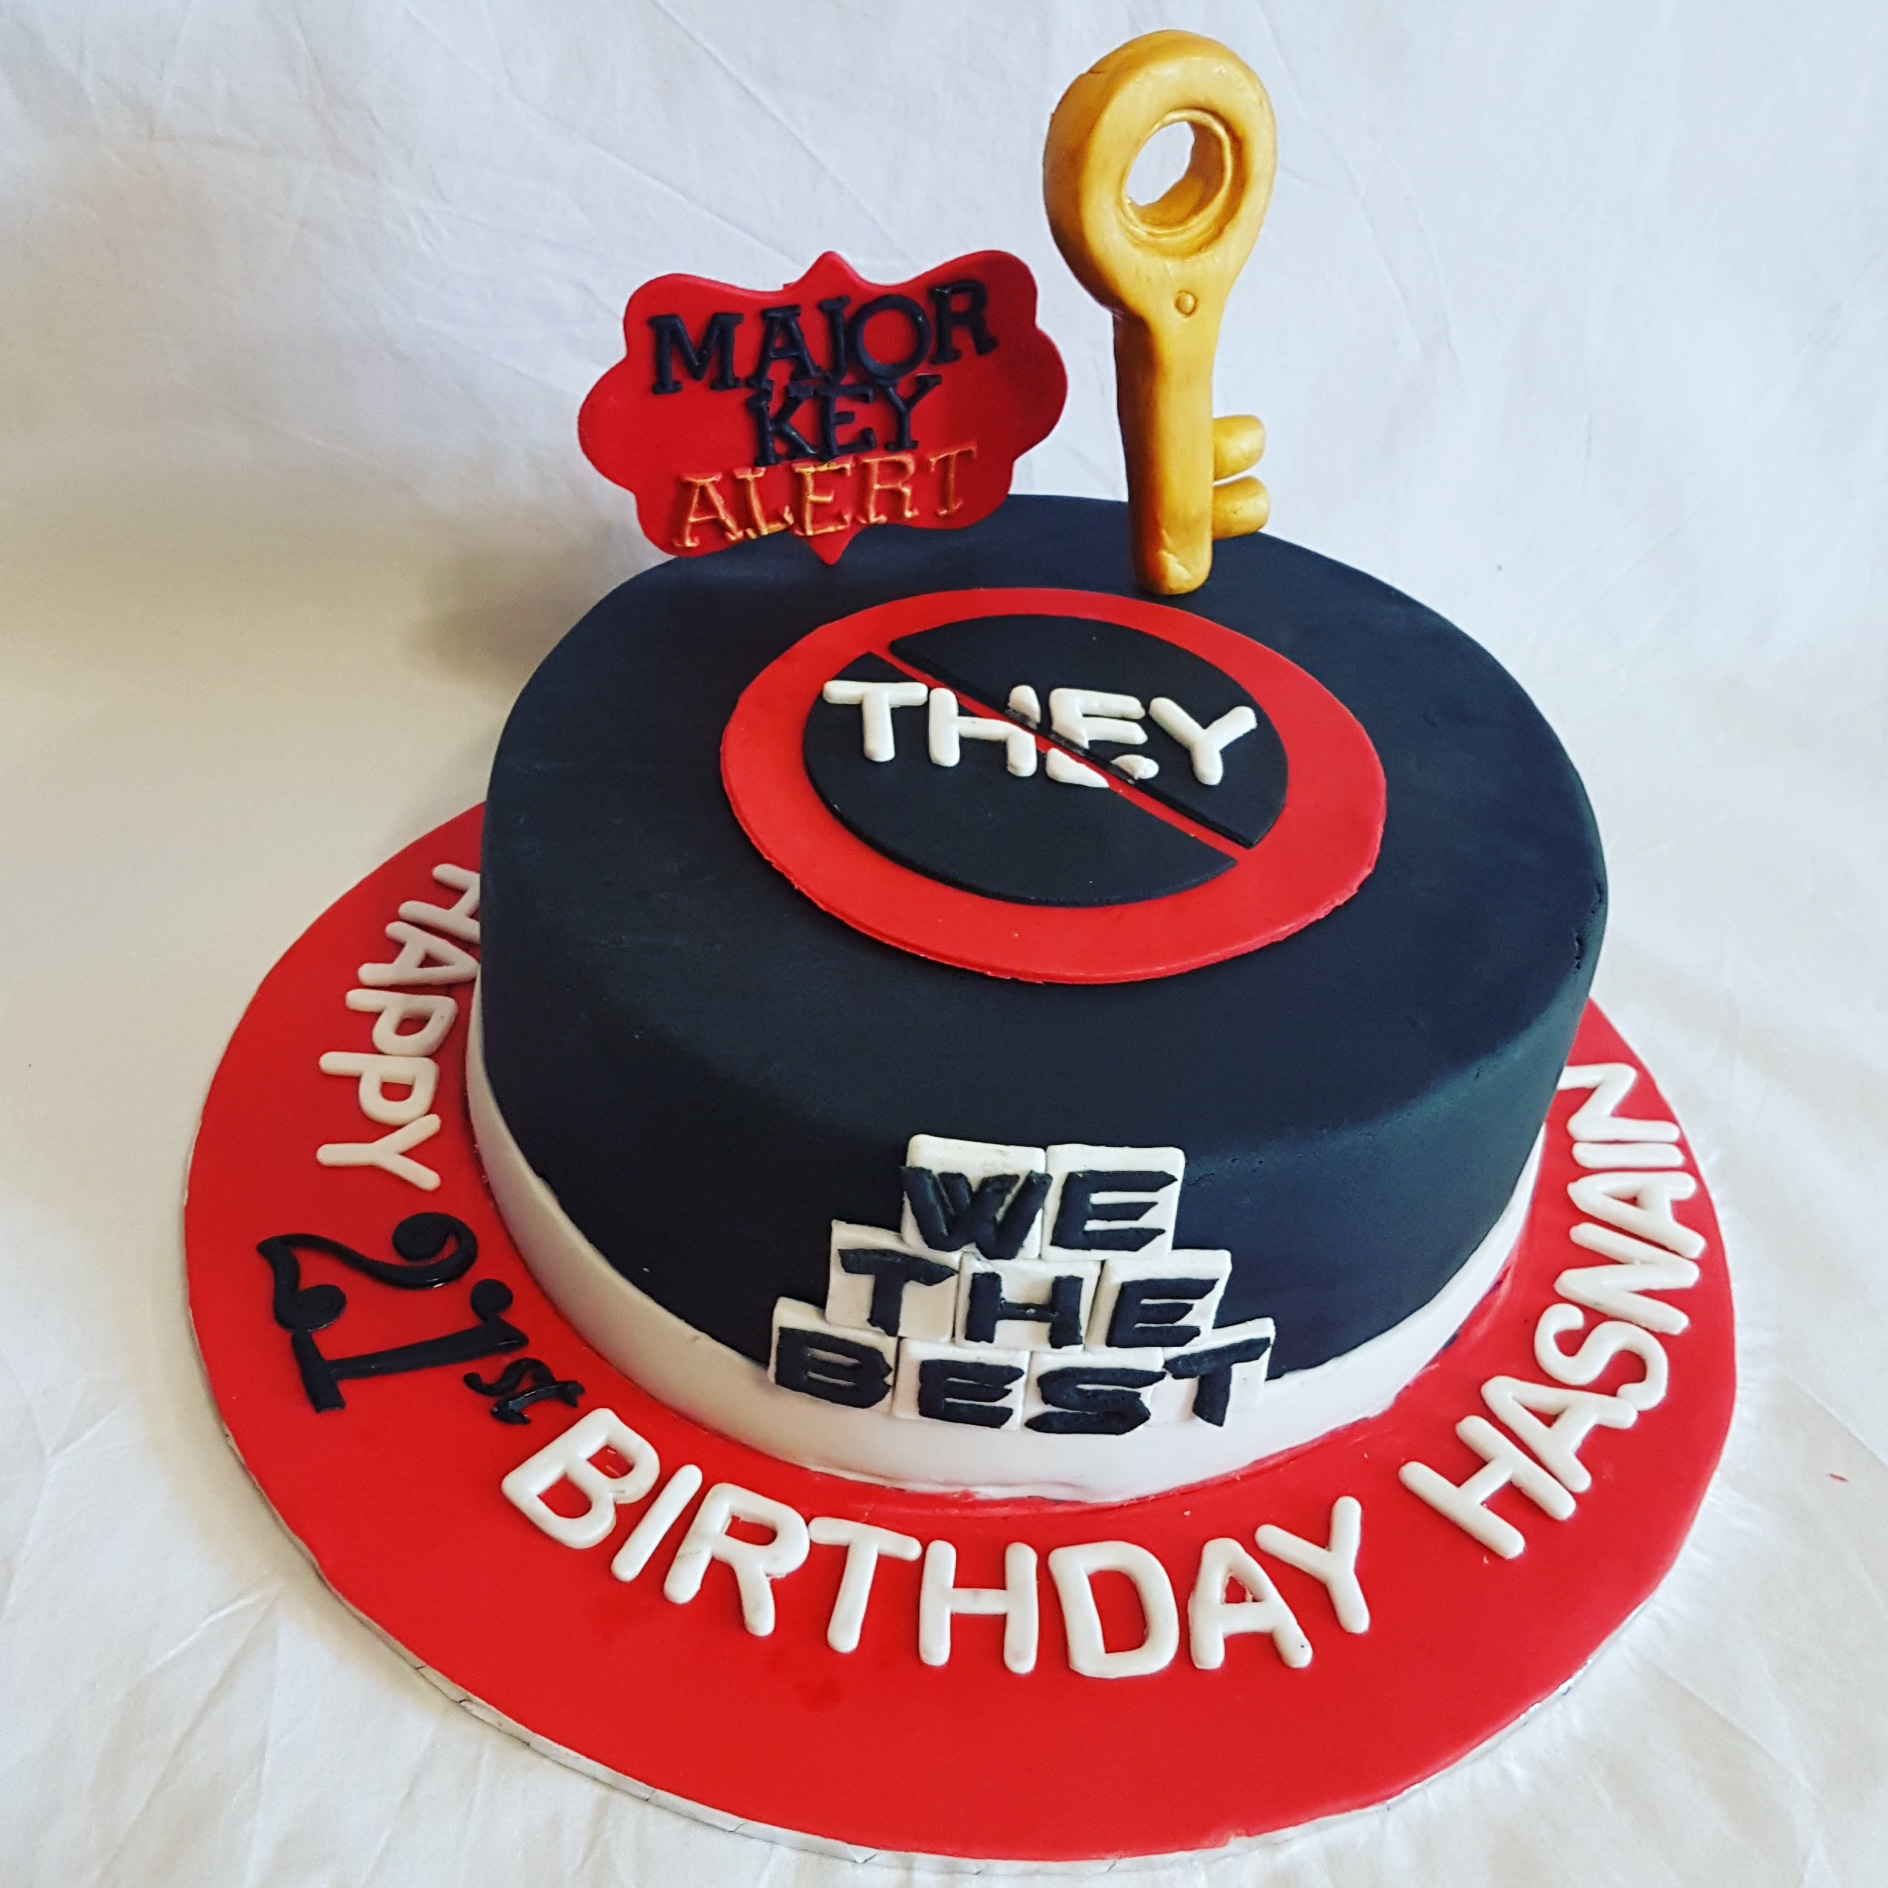 Groovy Dj Khaled Themed Cake Cakes By Mehwish Personalised Birthday Cards Cominlily Jamesorg